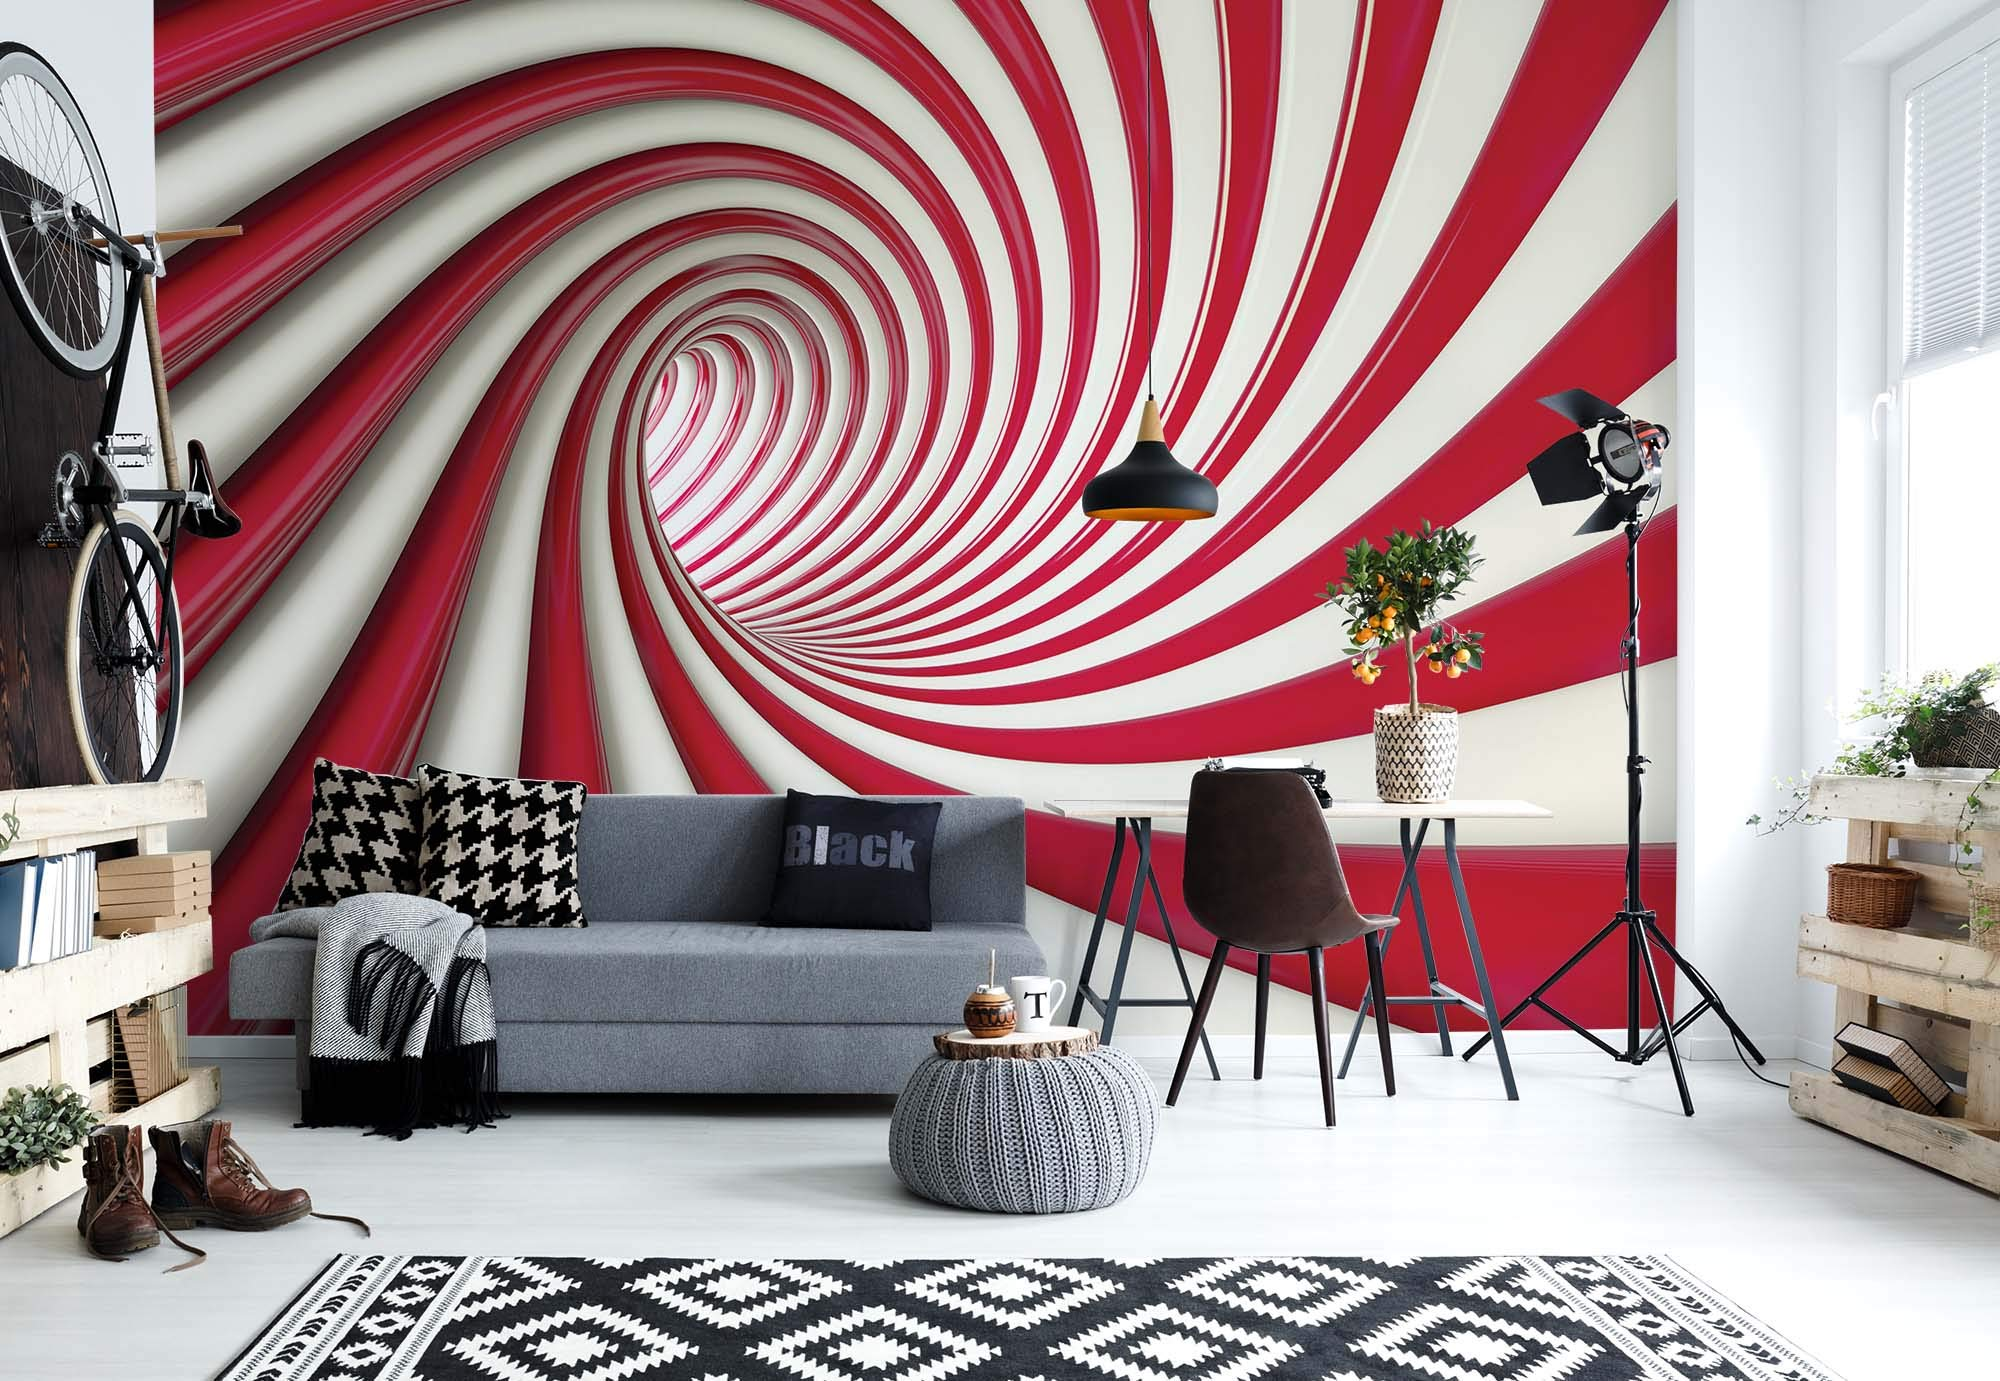 abstract wallpaper murals amazon co ukabstract swirl photo wallpaper wall mural easyinstall paper giant wall poster